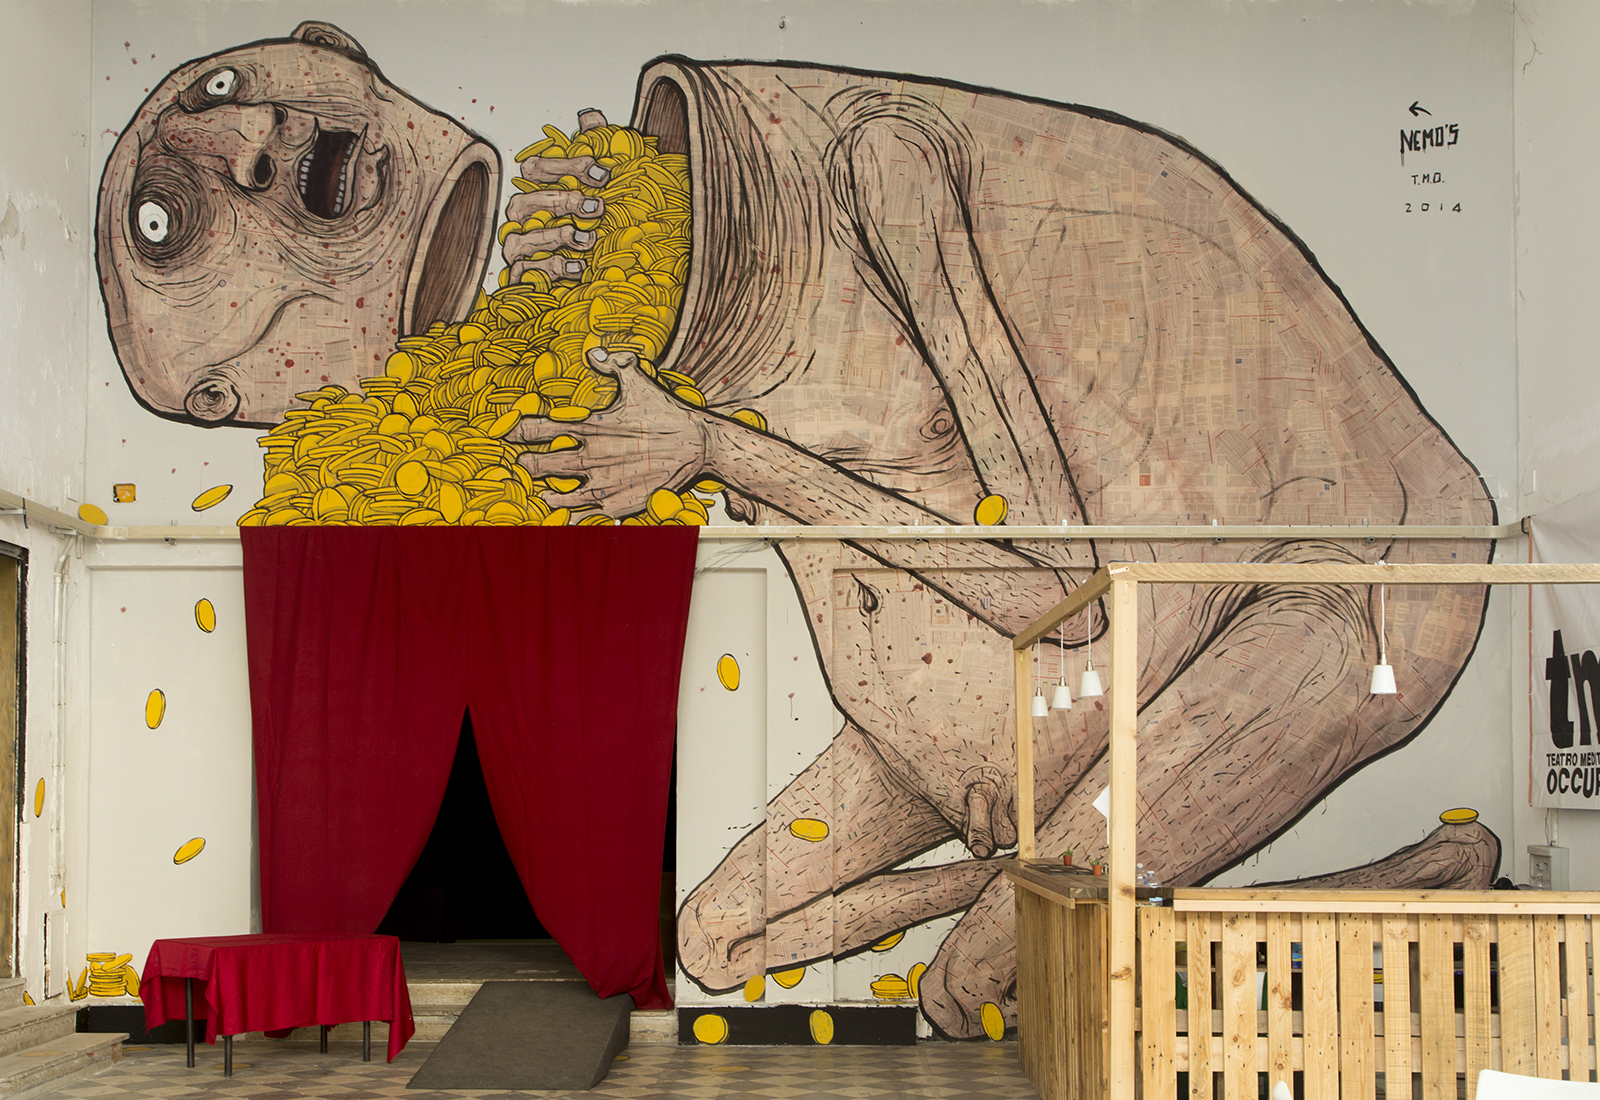 nemos-new-mural-at-teatro-mediterraneo-occupato-01